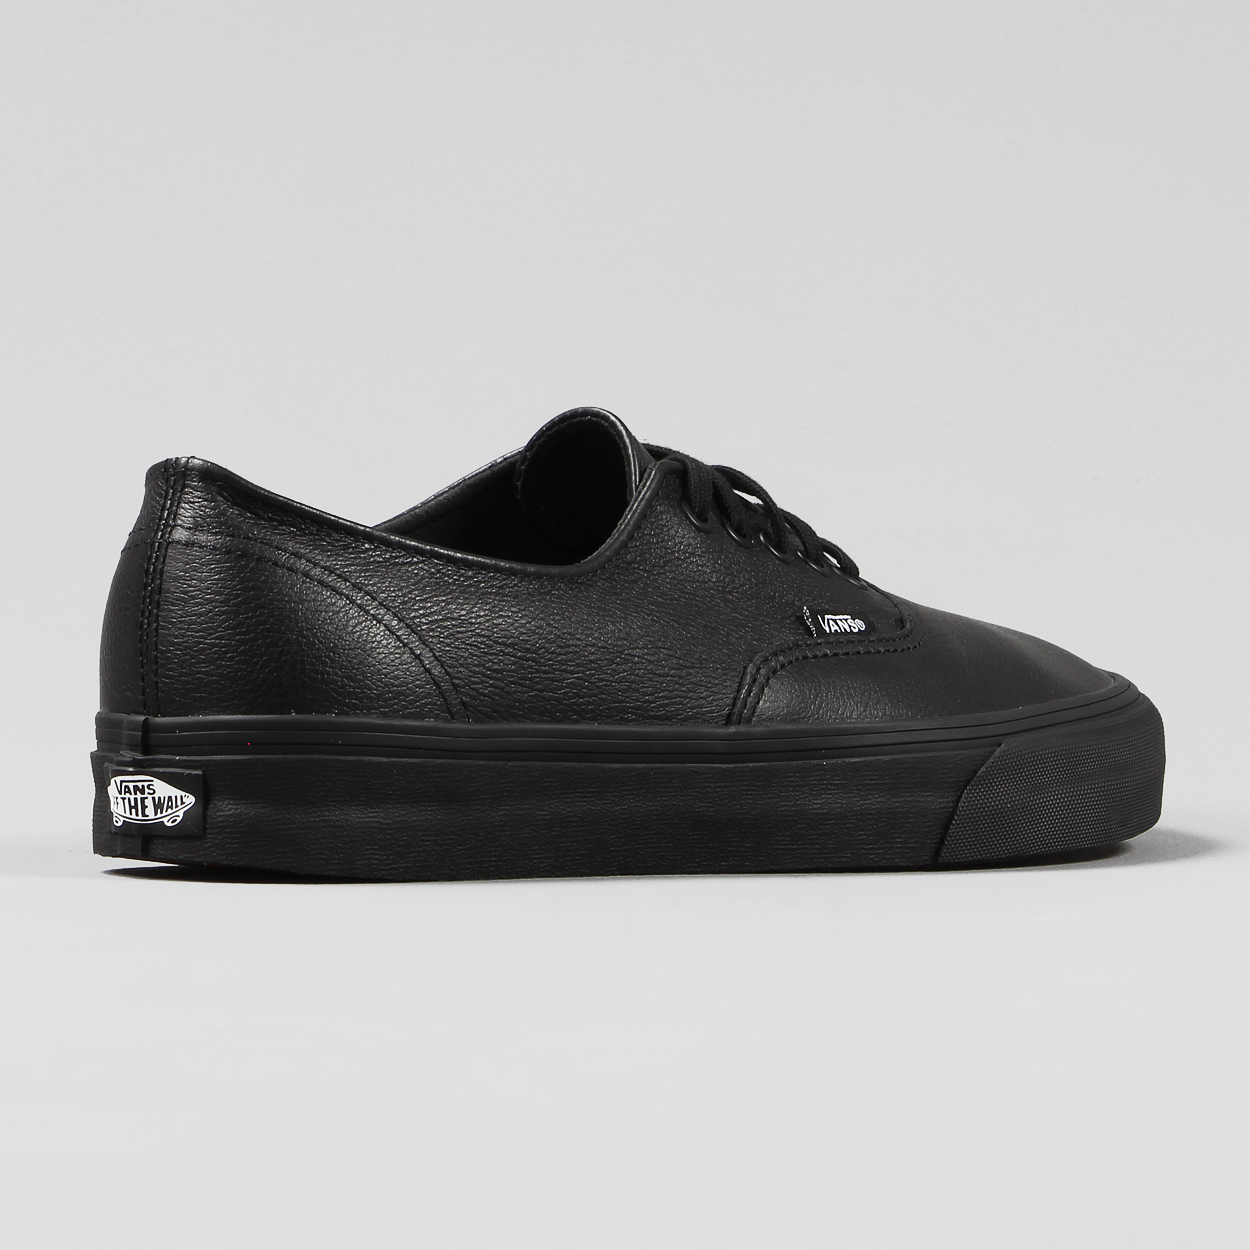 9958ffd1dc0 Vans are back with the smart Premium Leather in black for these new Authentic  Decon Shoes.